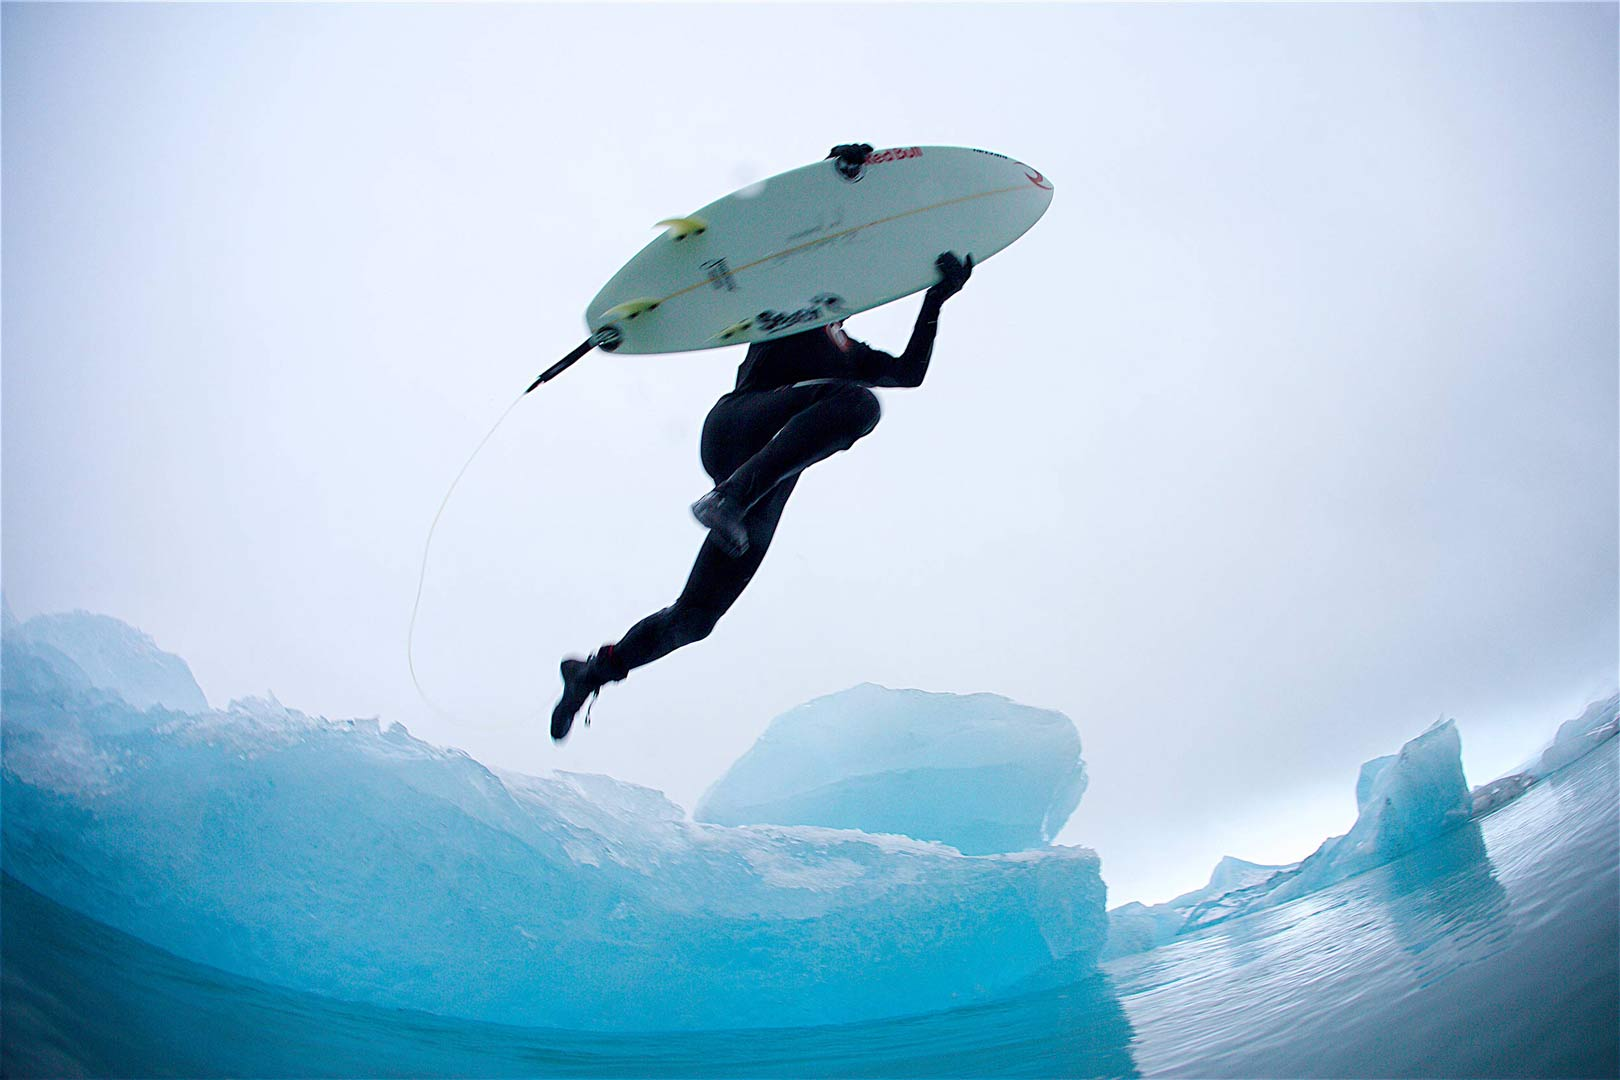 EXTREME LOCATION SURF ADVENTURE Heated wetsuit commercial shoot for Rip Curl in Iceland